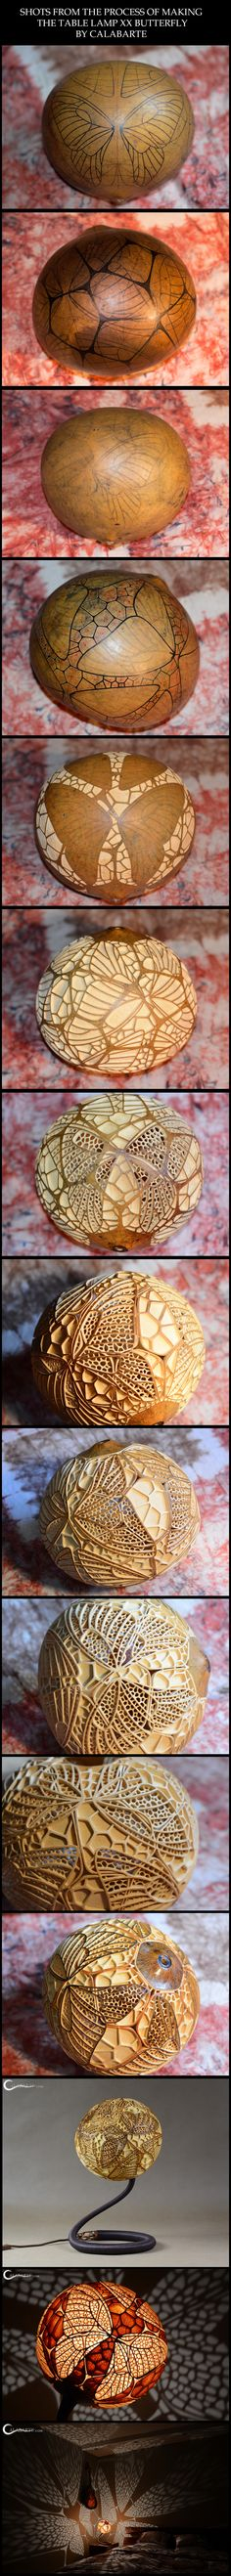 Shots from the process of making the Table Lamp XX by Calabarte. Unique handcrafted gourd lamp. Follow Calabarte on Facebook: https://www.facebook.com/calabarte